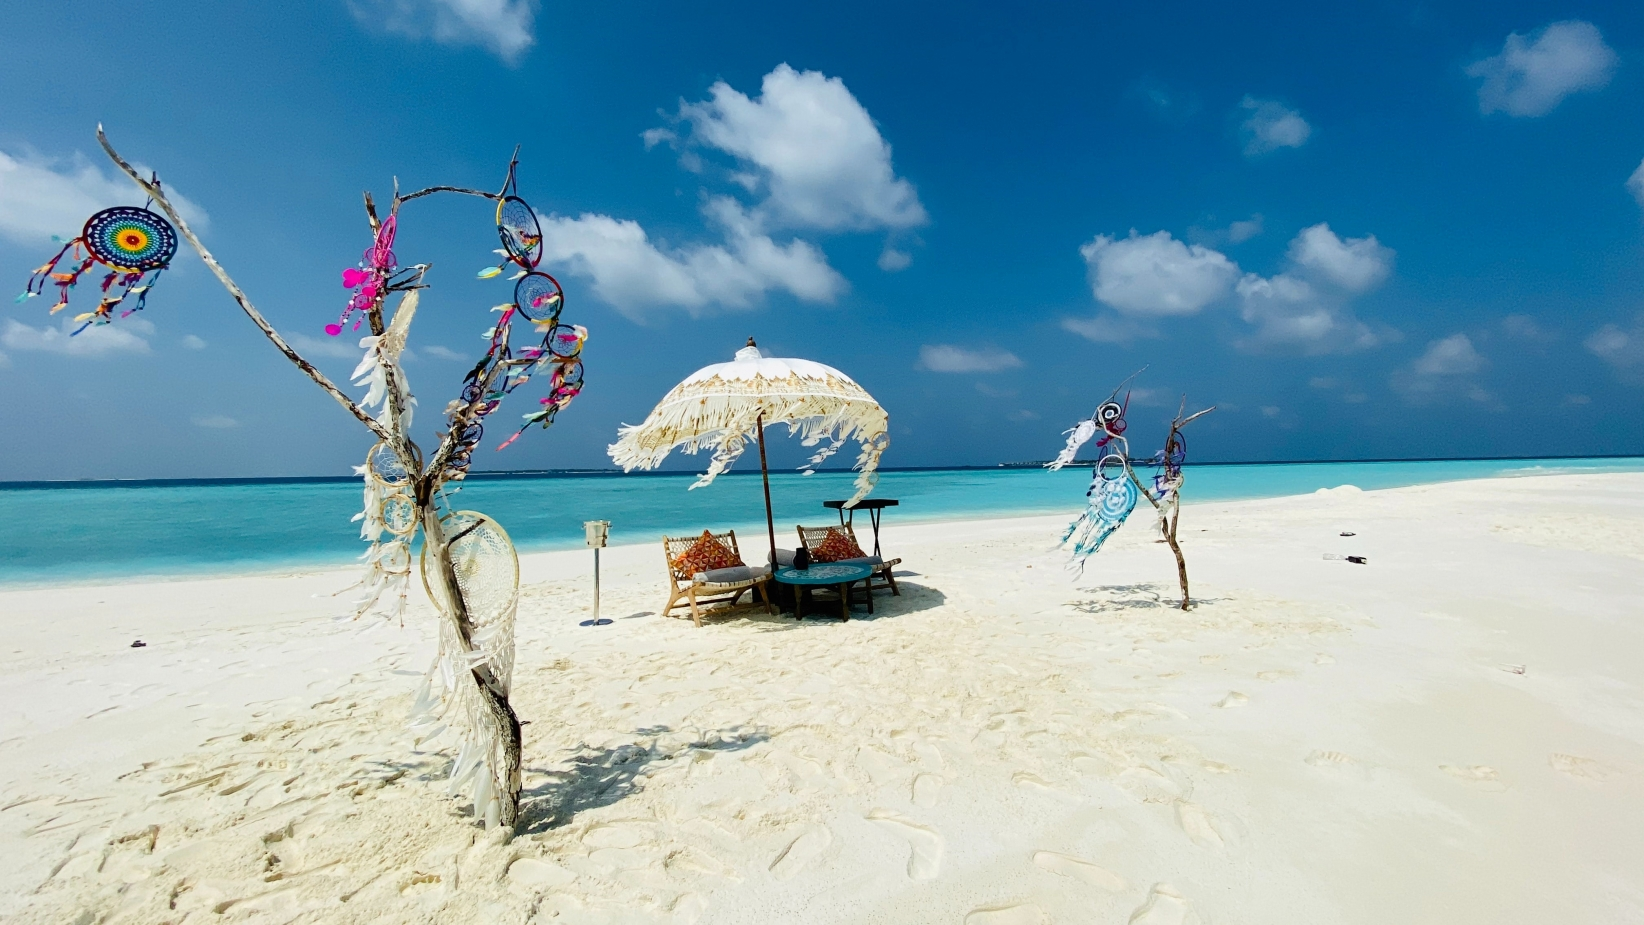 Tour Packages in Maldives